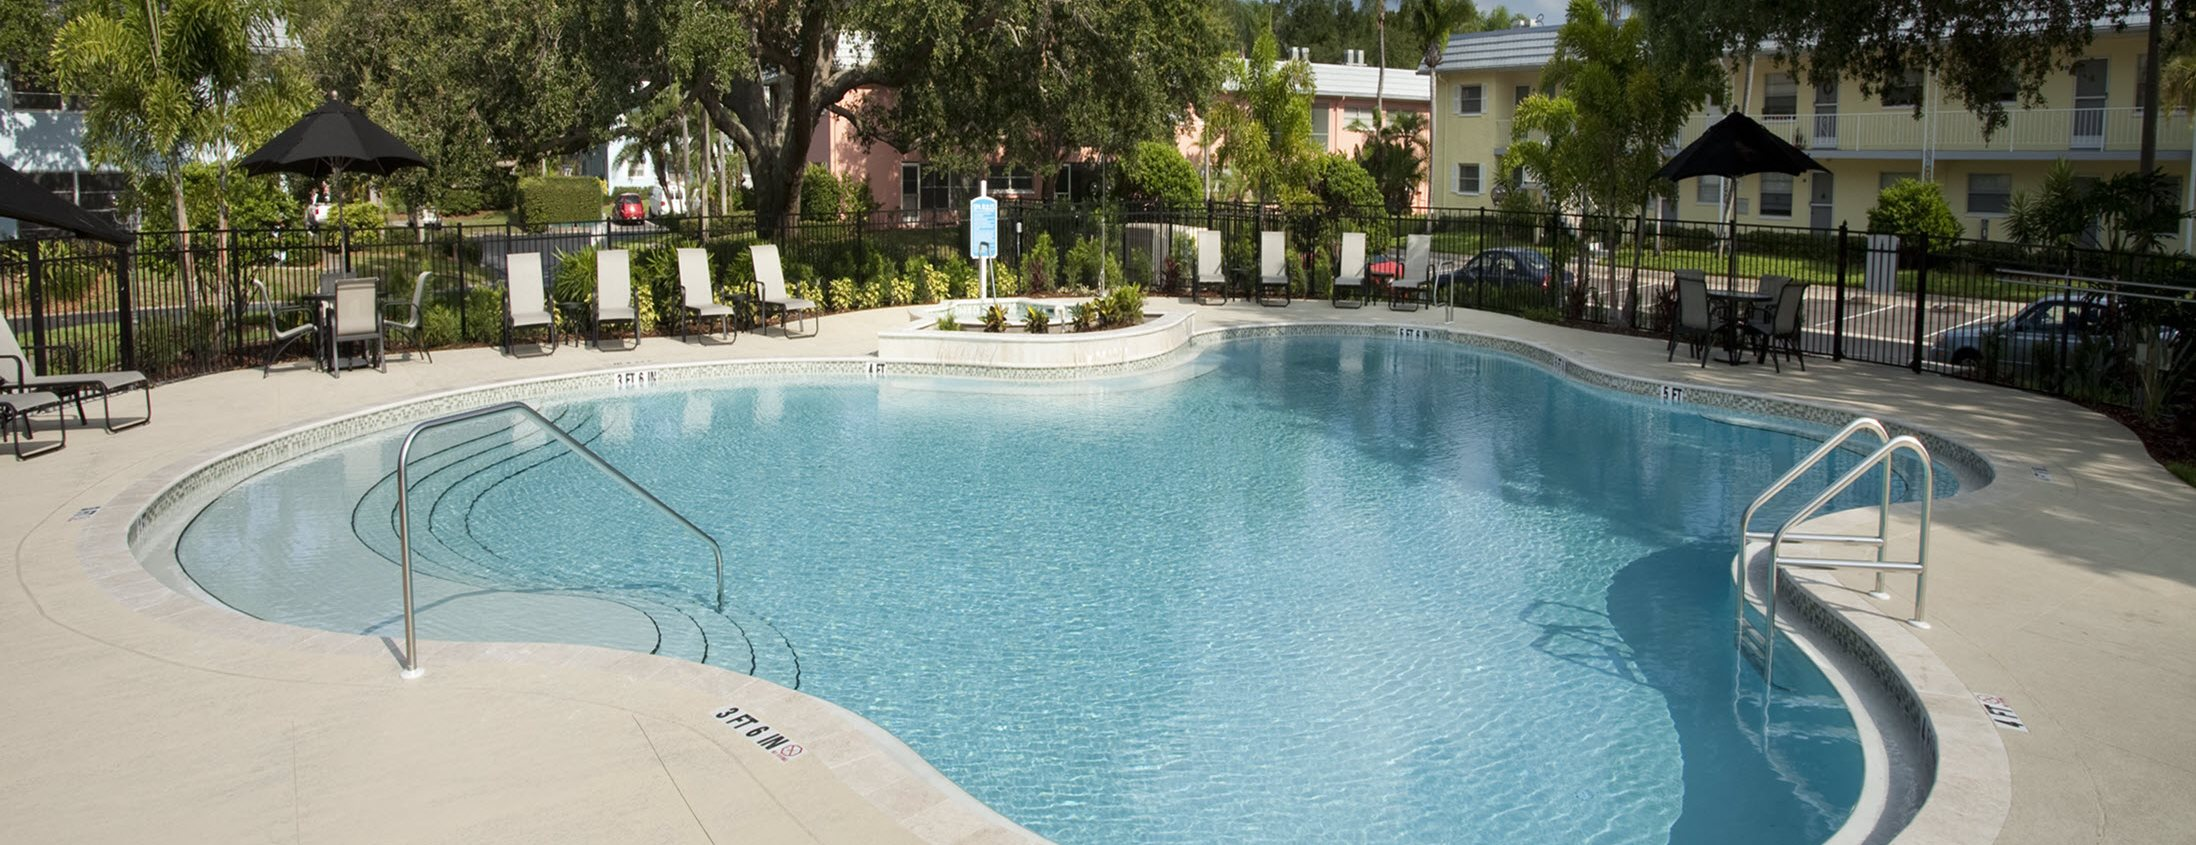 Imperial Gardens Apartments Clearwater Fl